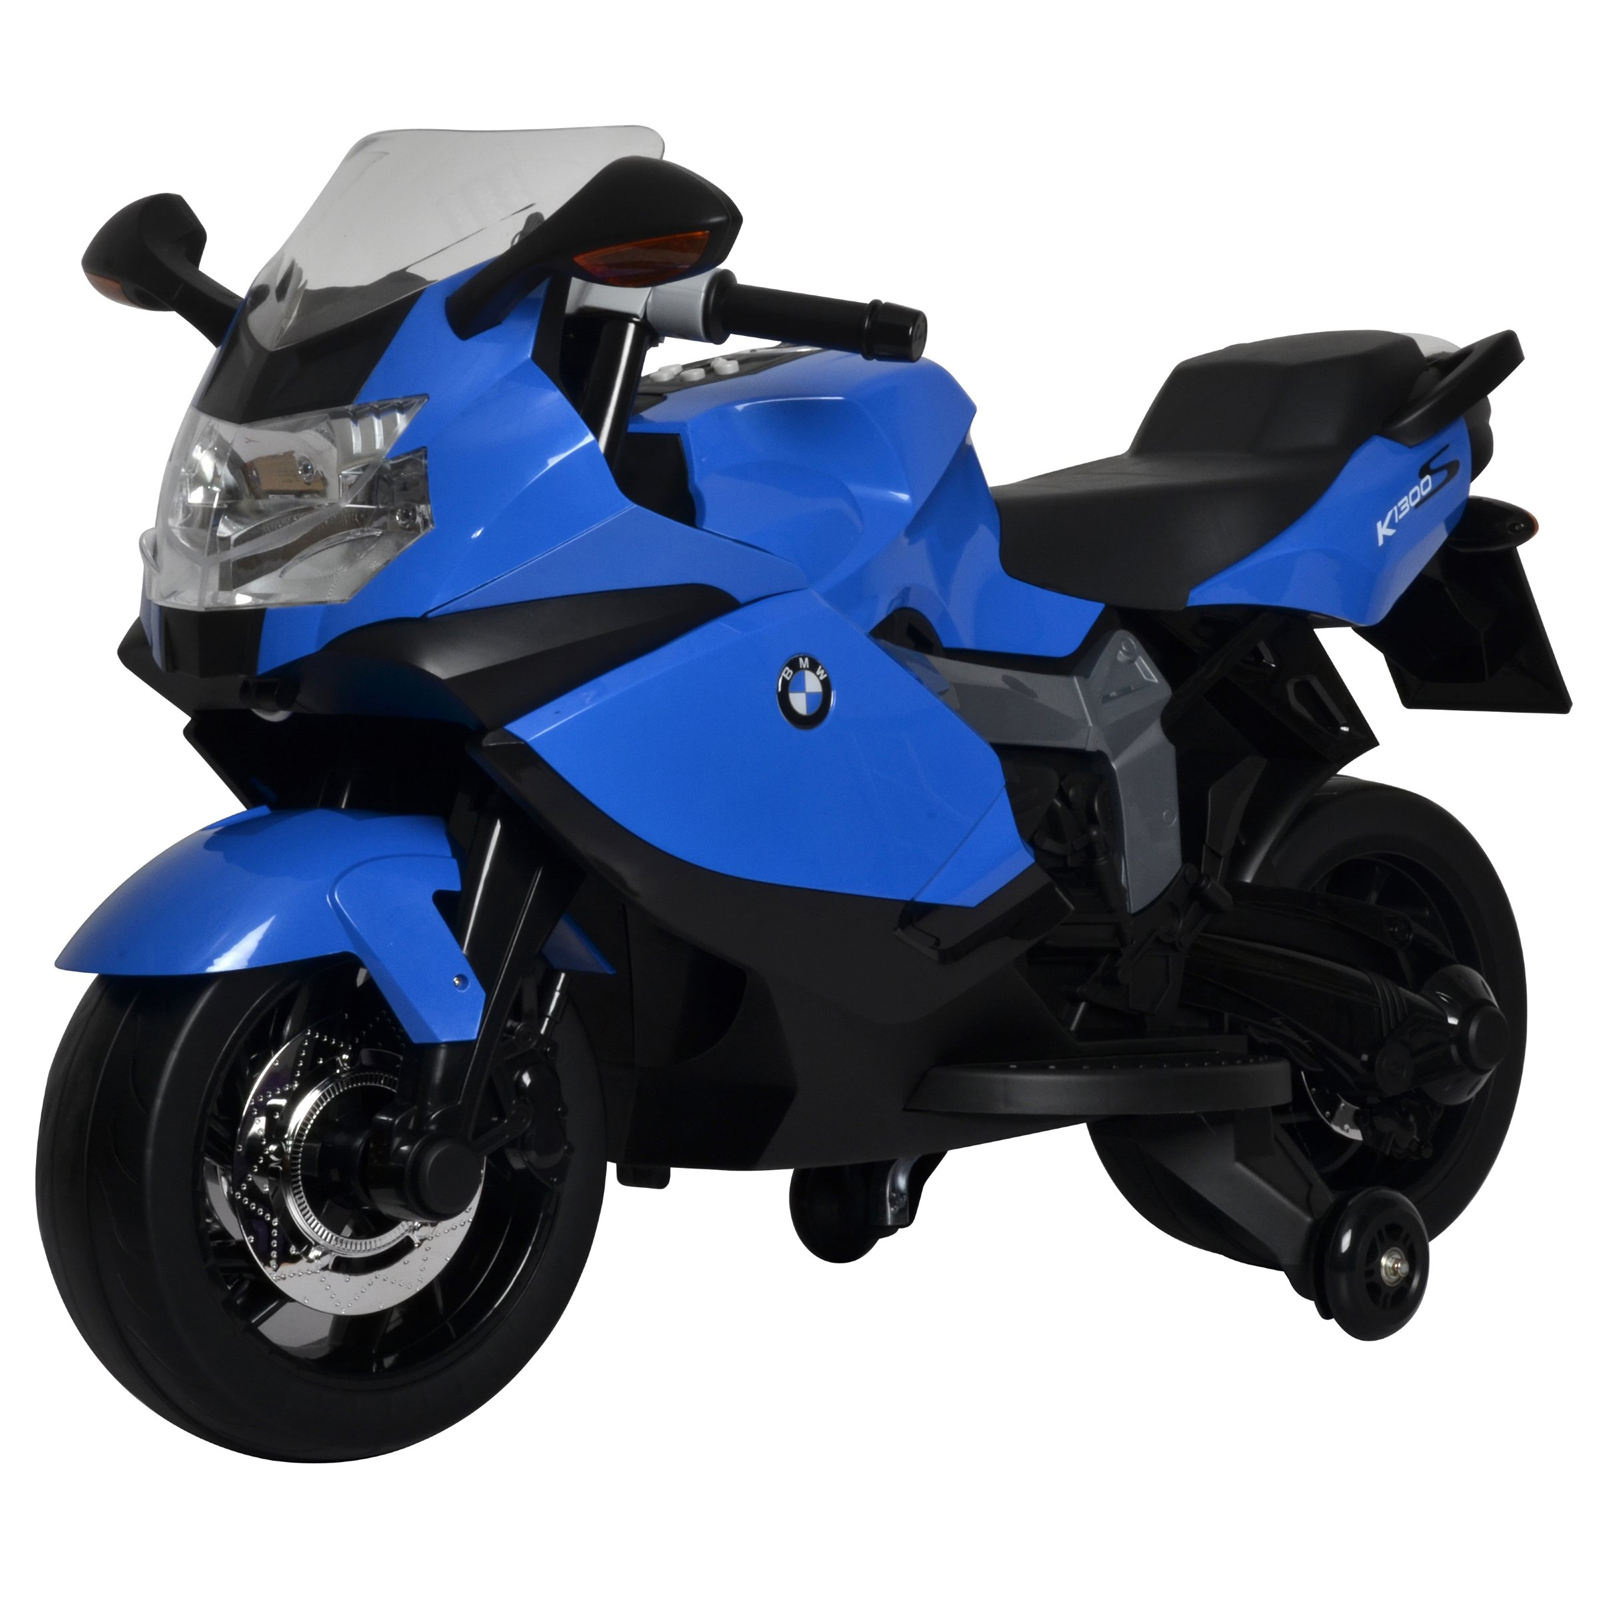 Licensed BMW Motorcycle 12V Kids Battery Powered Ride On Car Blue by KidFun Products